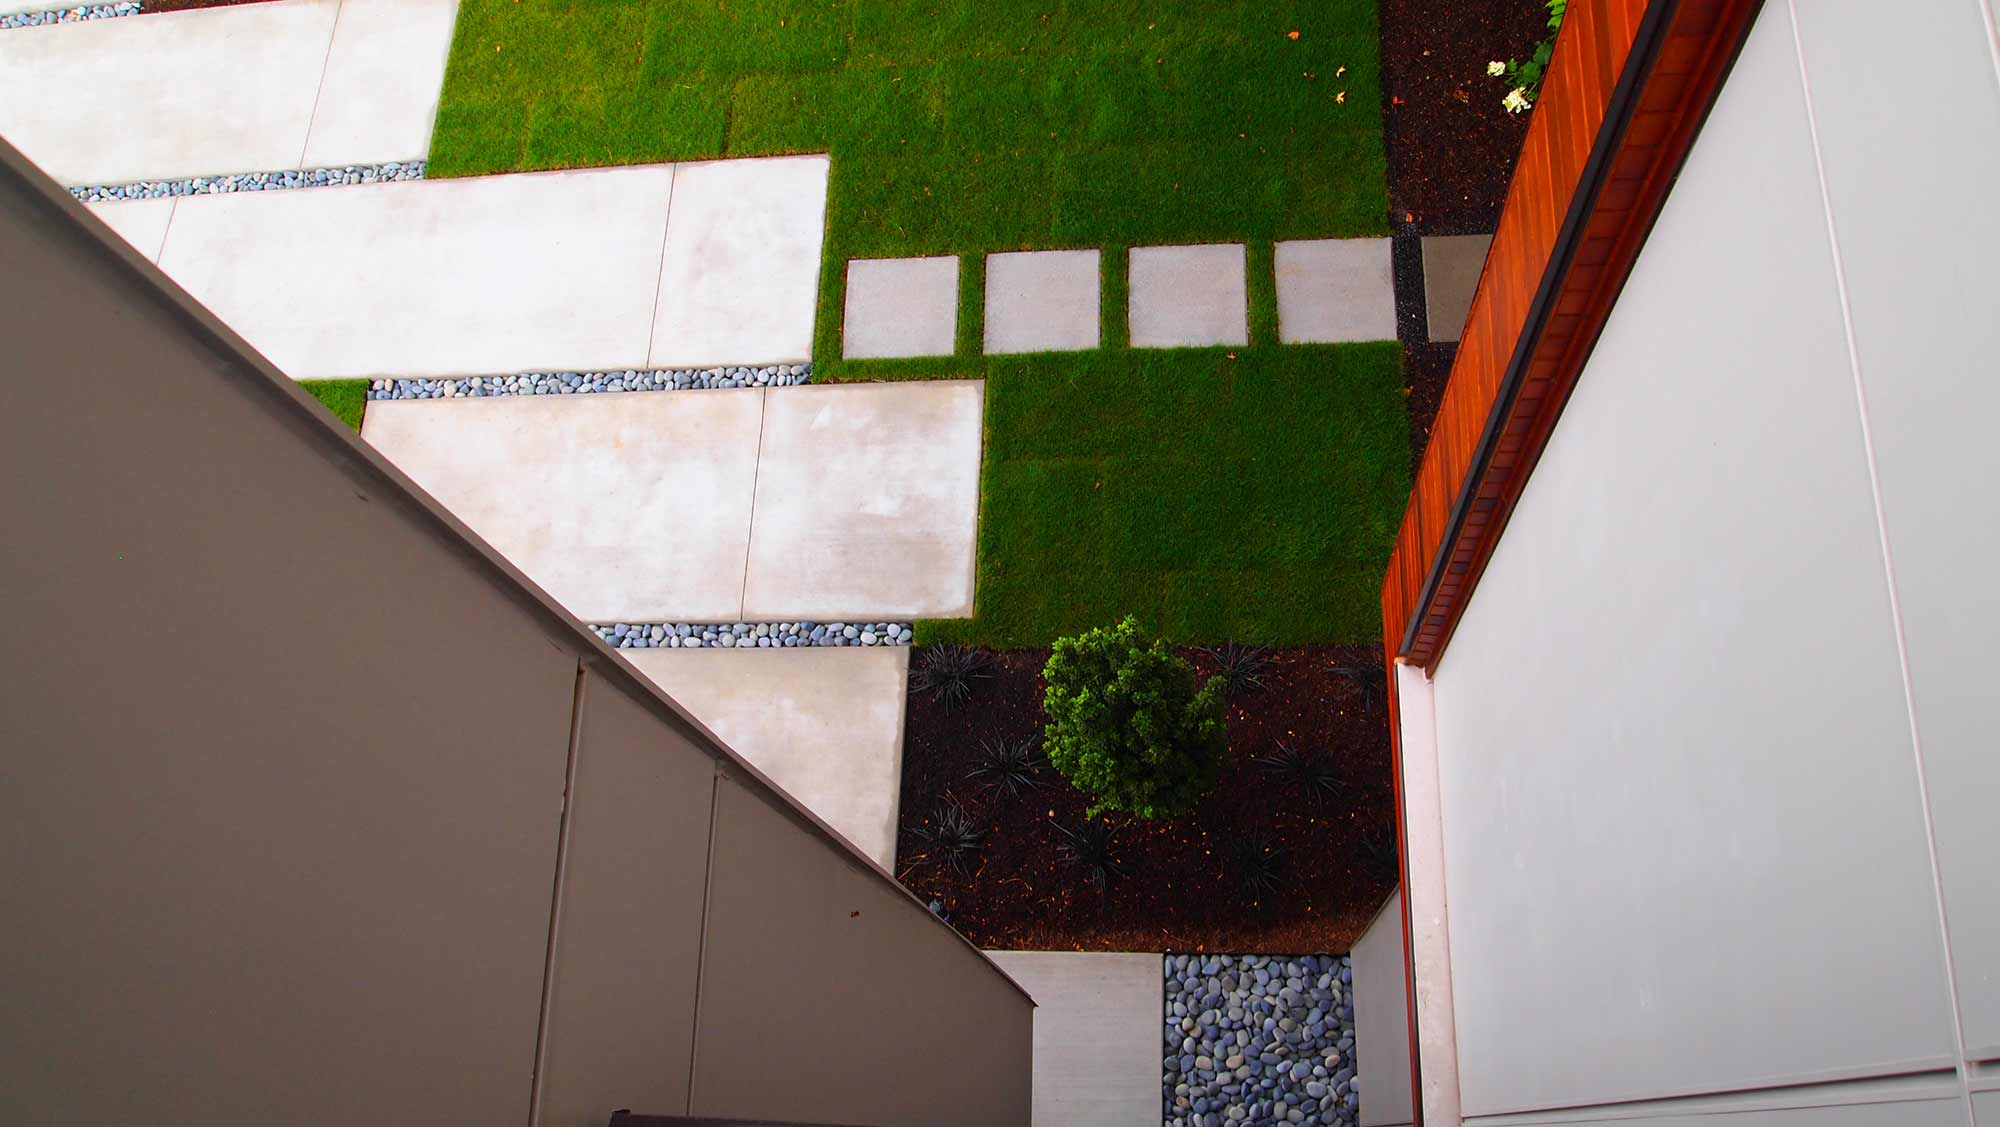 LARGE SCALE FLOATING CONCRETE PADS INTERLOCKING WITH LAWN TO CREATE AND ELEGANT ENTRY